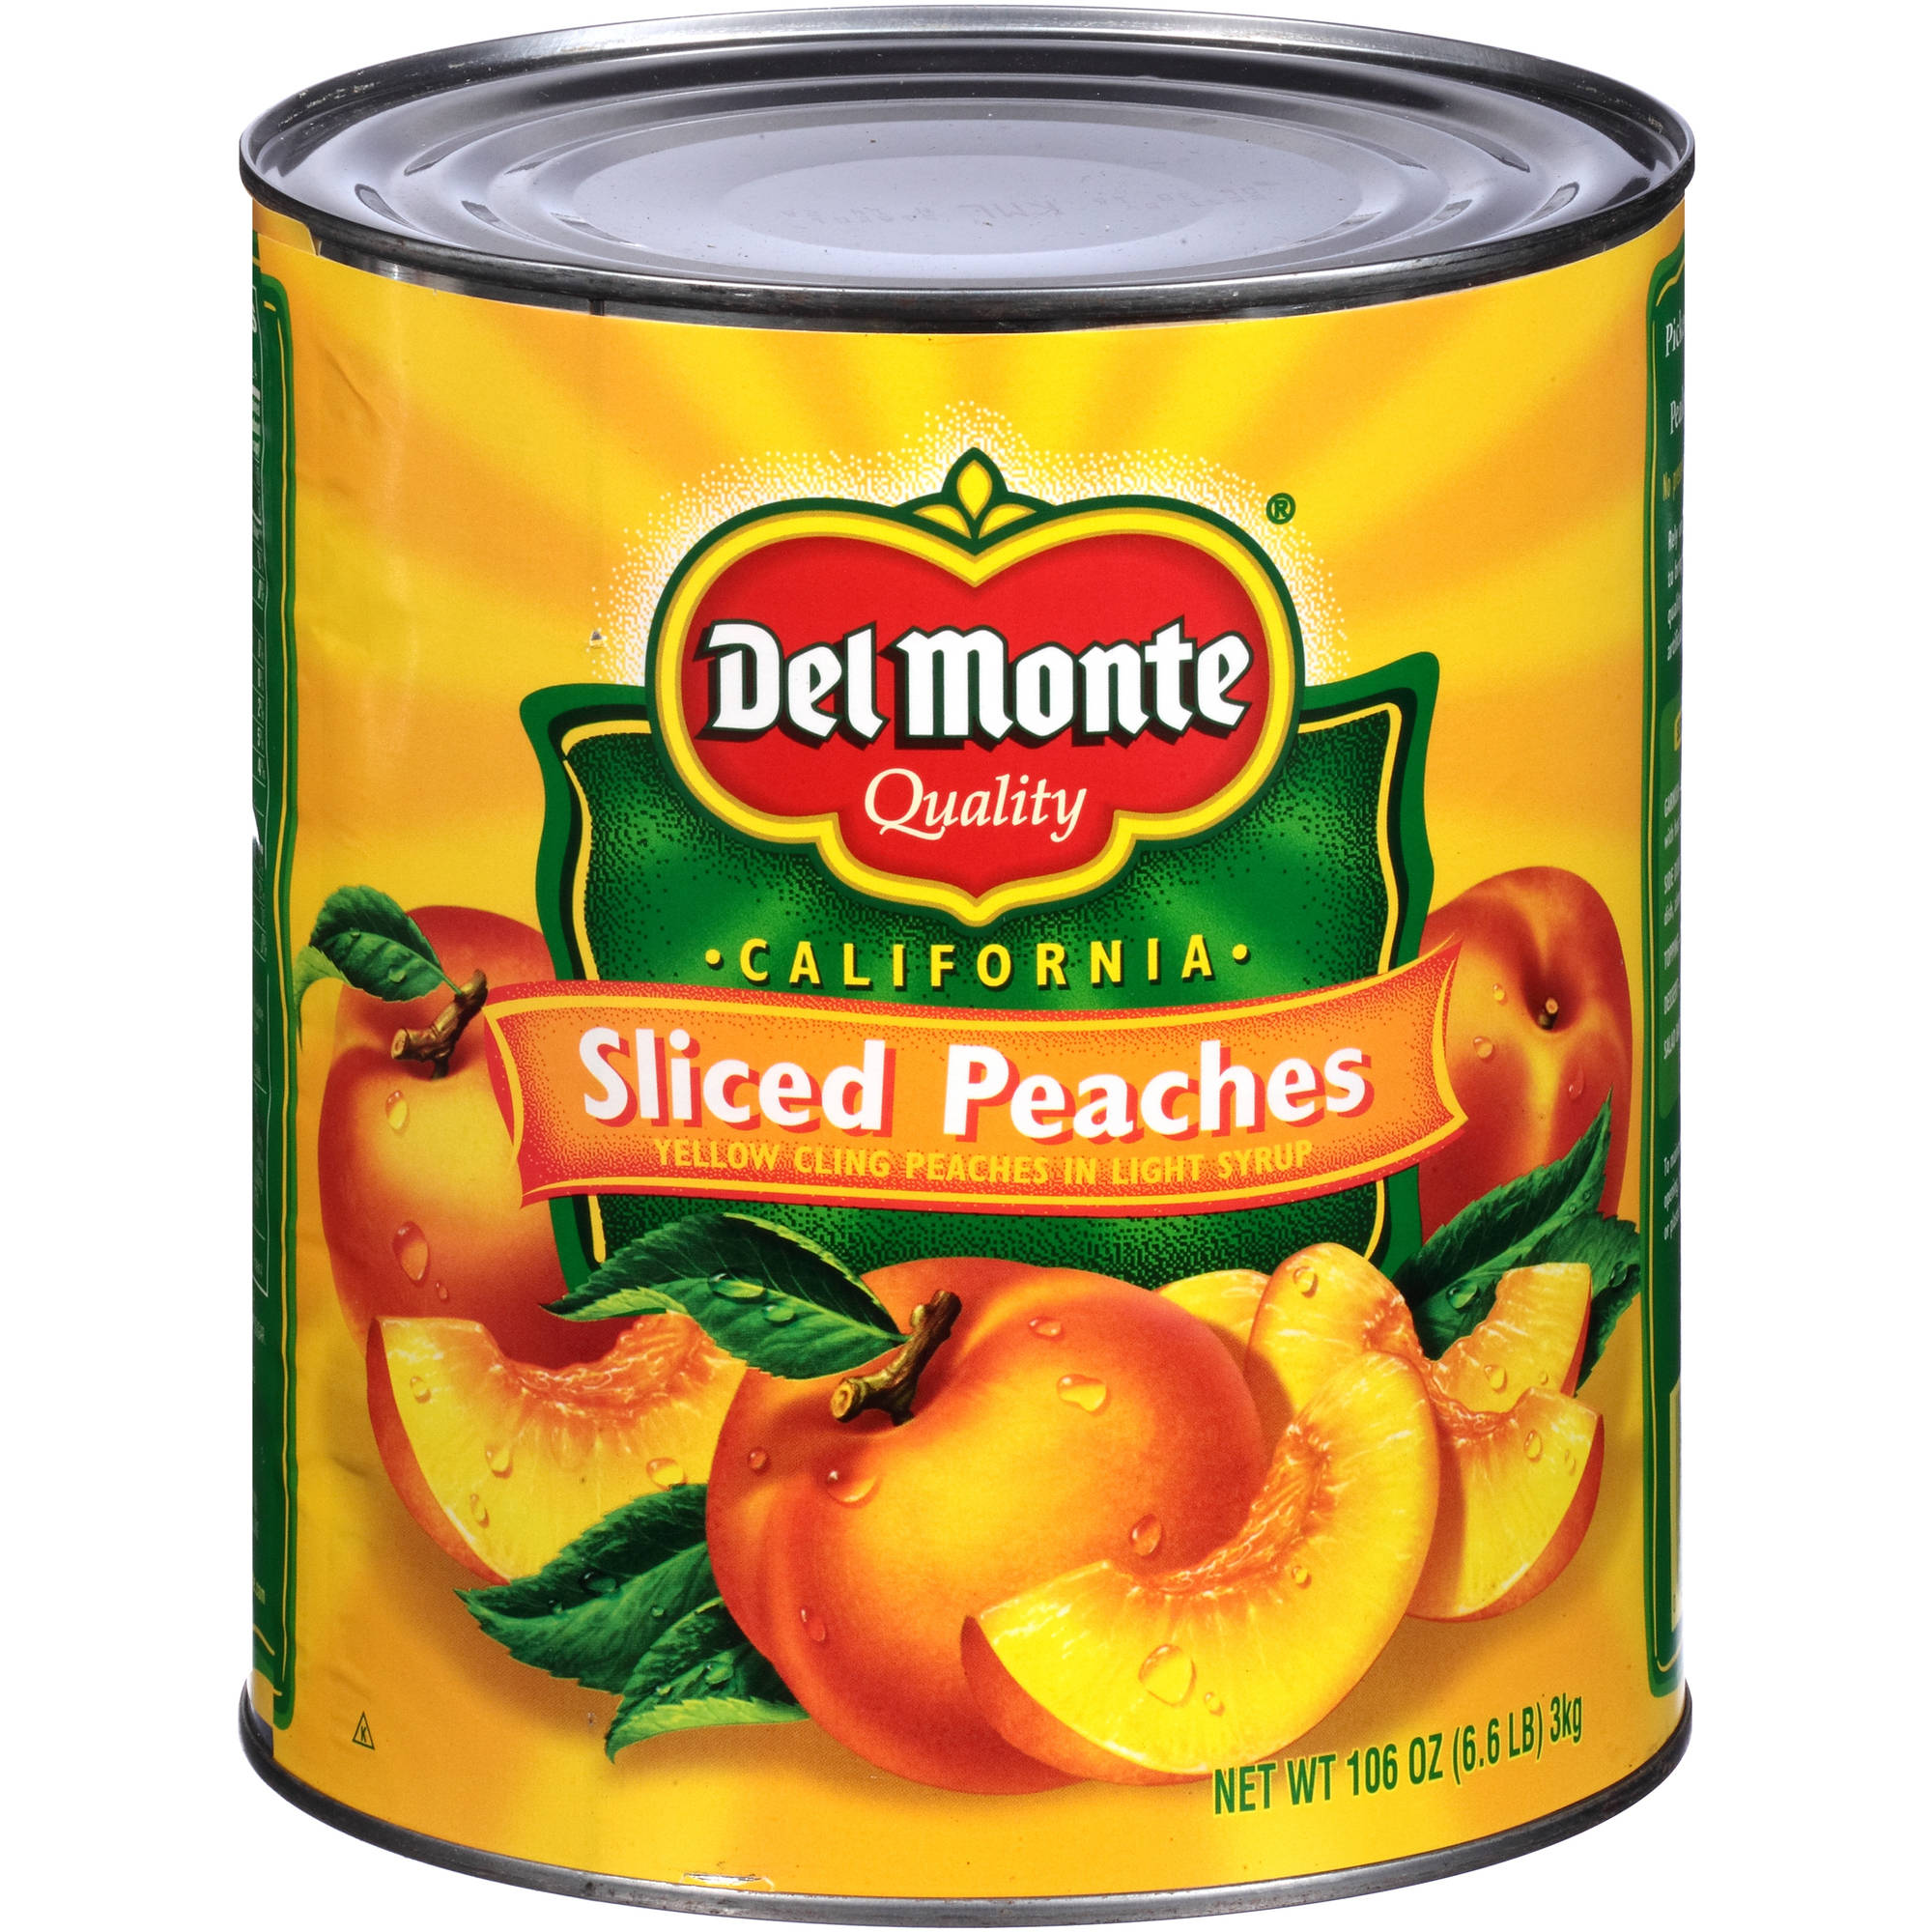 Del Monte: California Sliced Peaches, 106 Oz